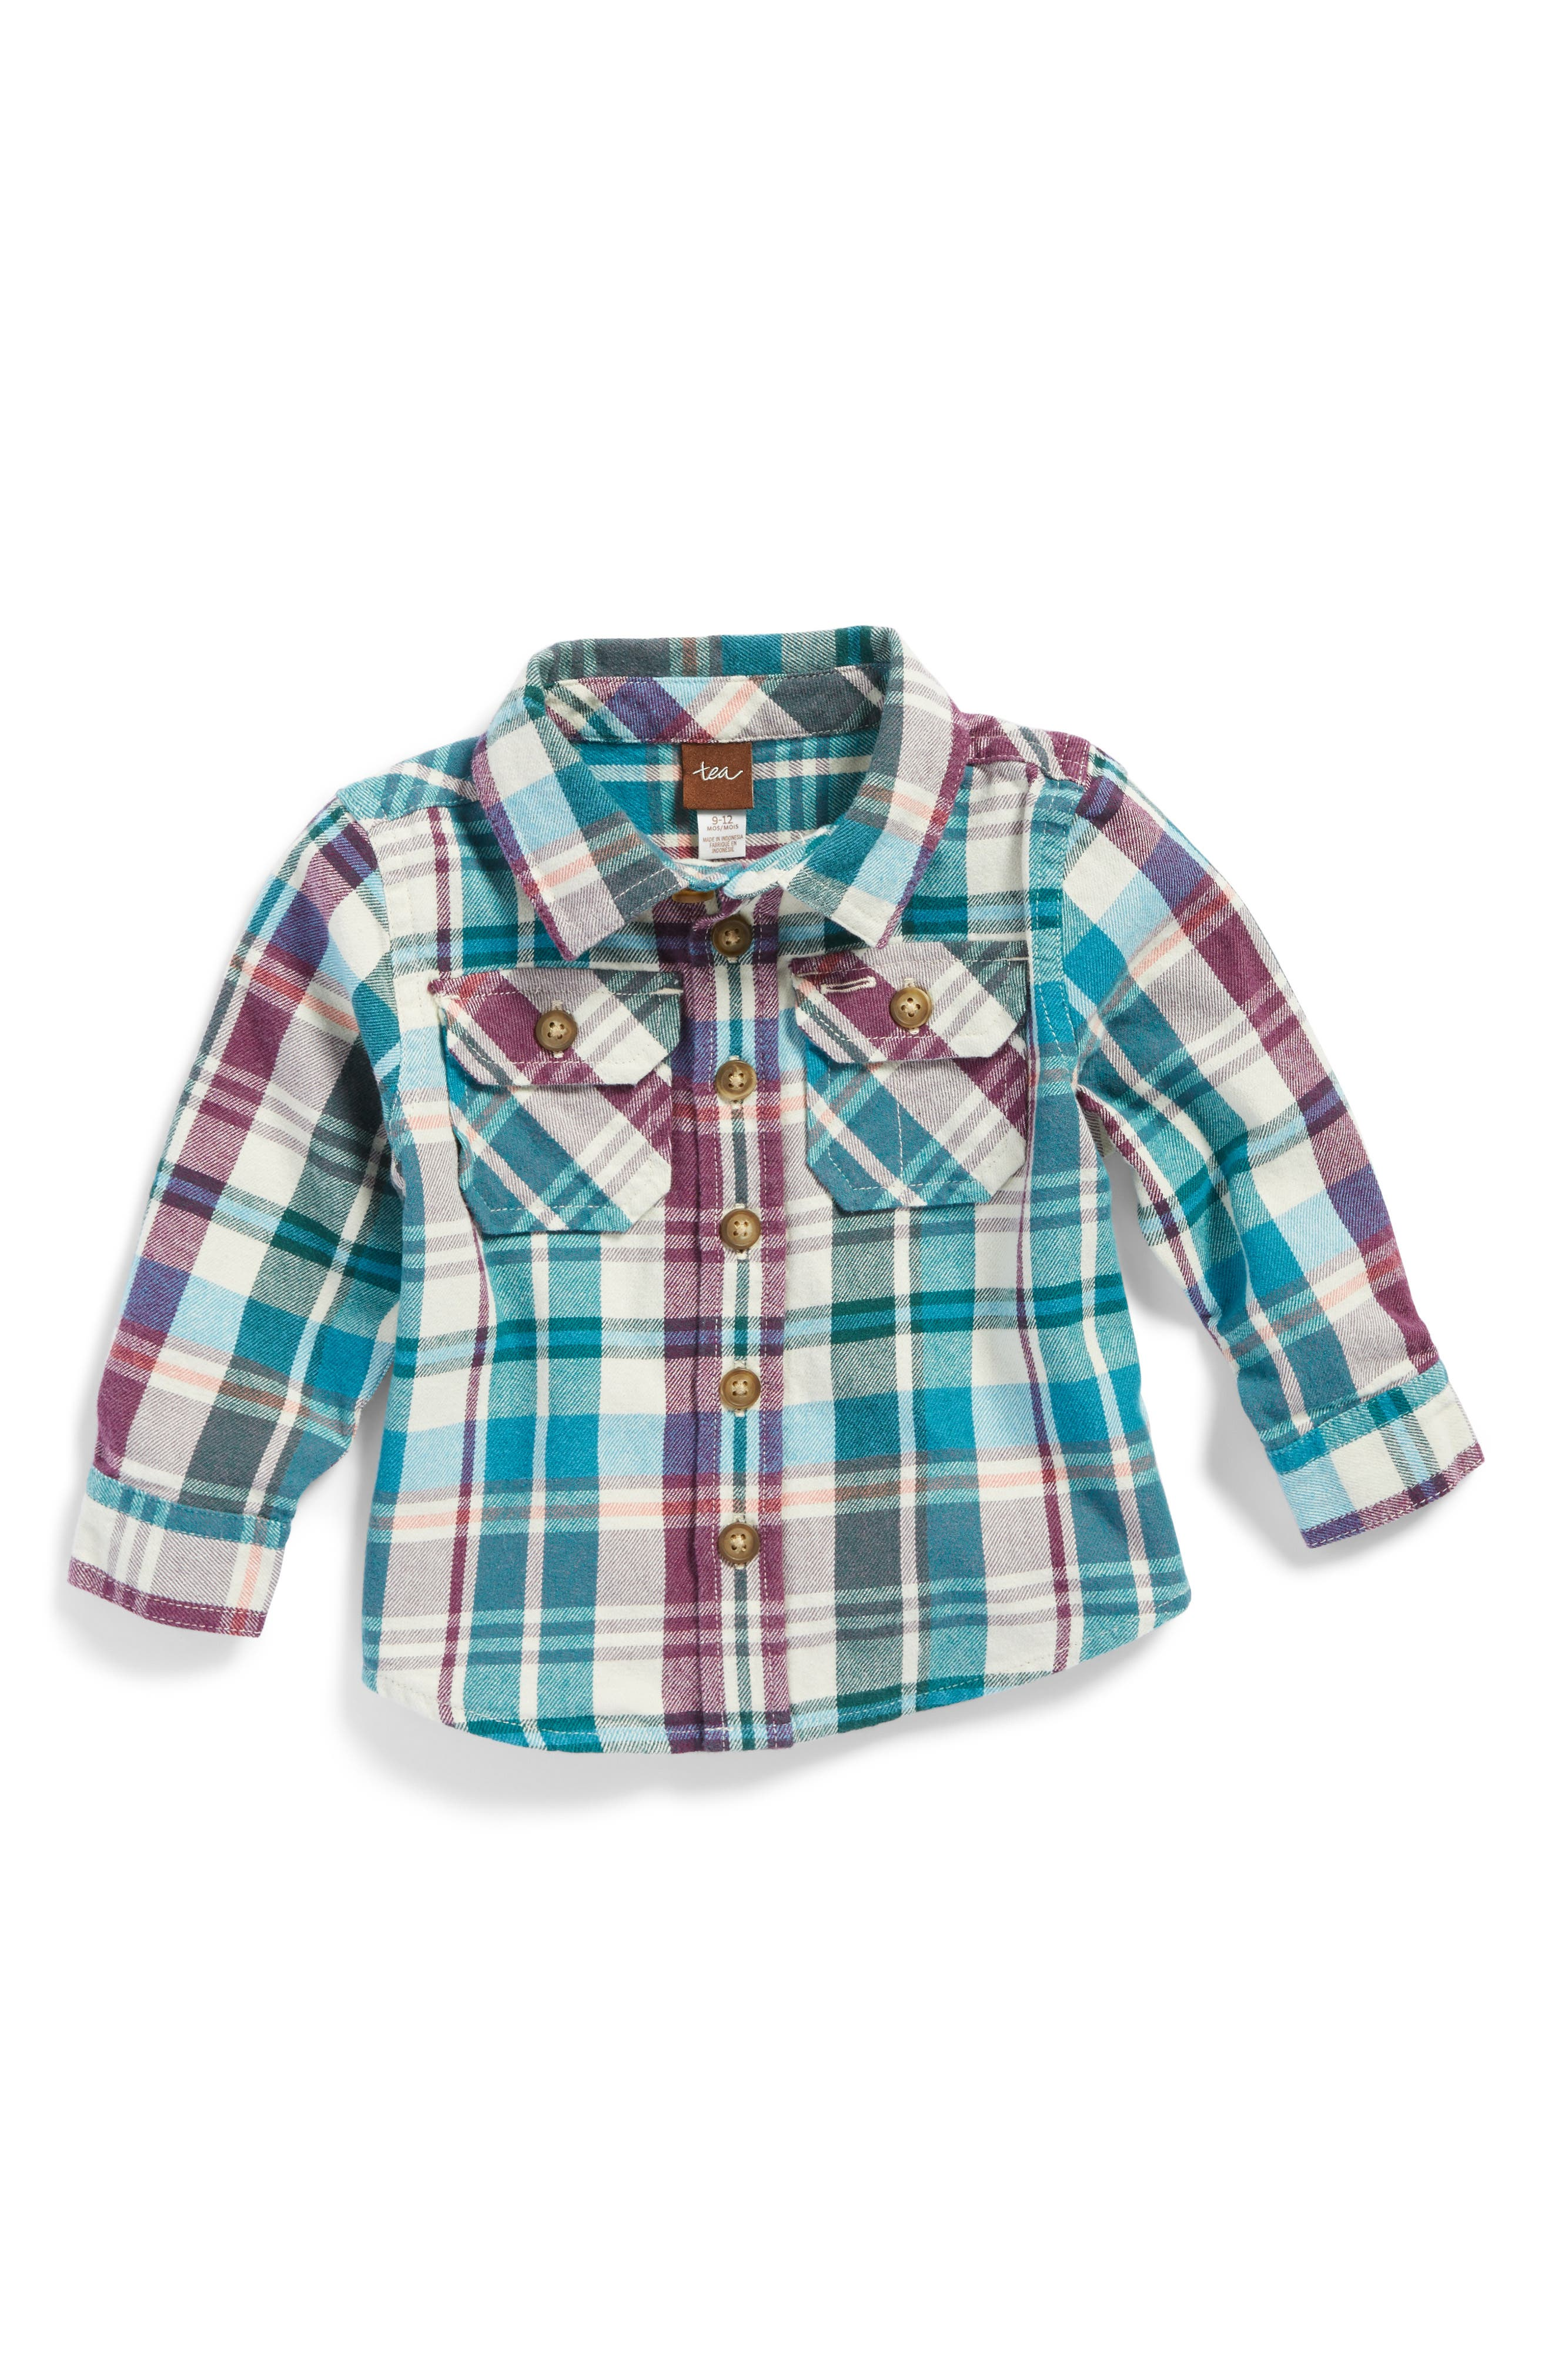 Alternate Image 1 Selected - Tea Collection Beaufort Plaid Flannel Shirt (Baby Boys)